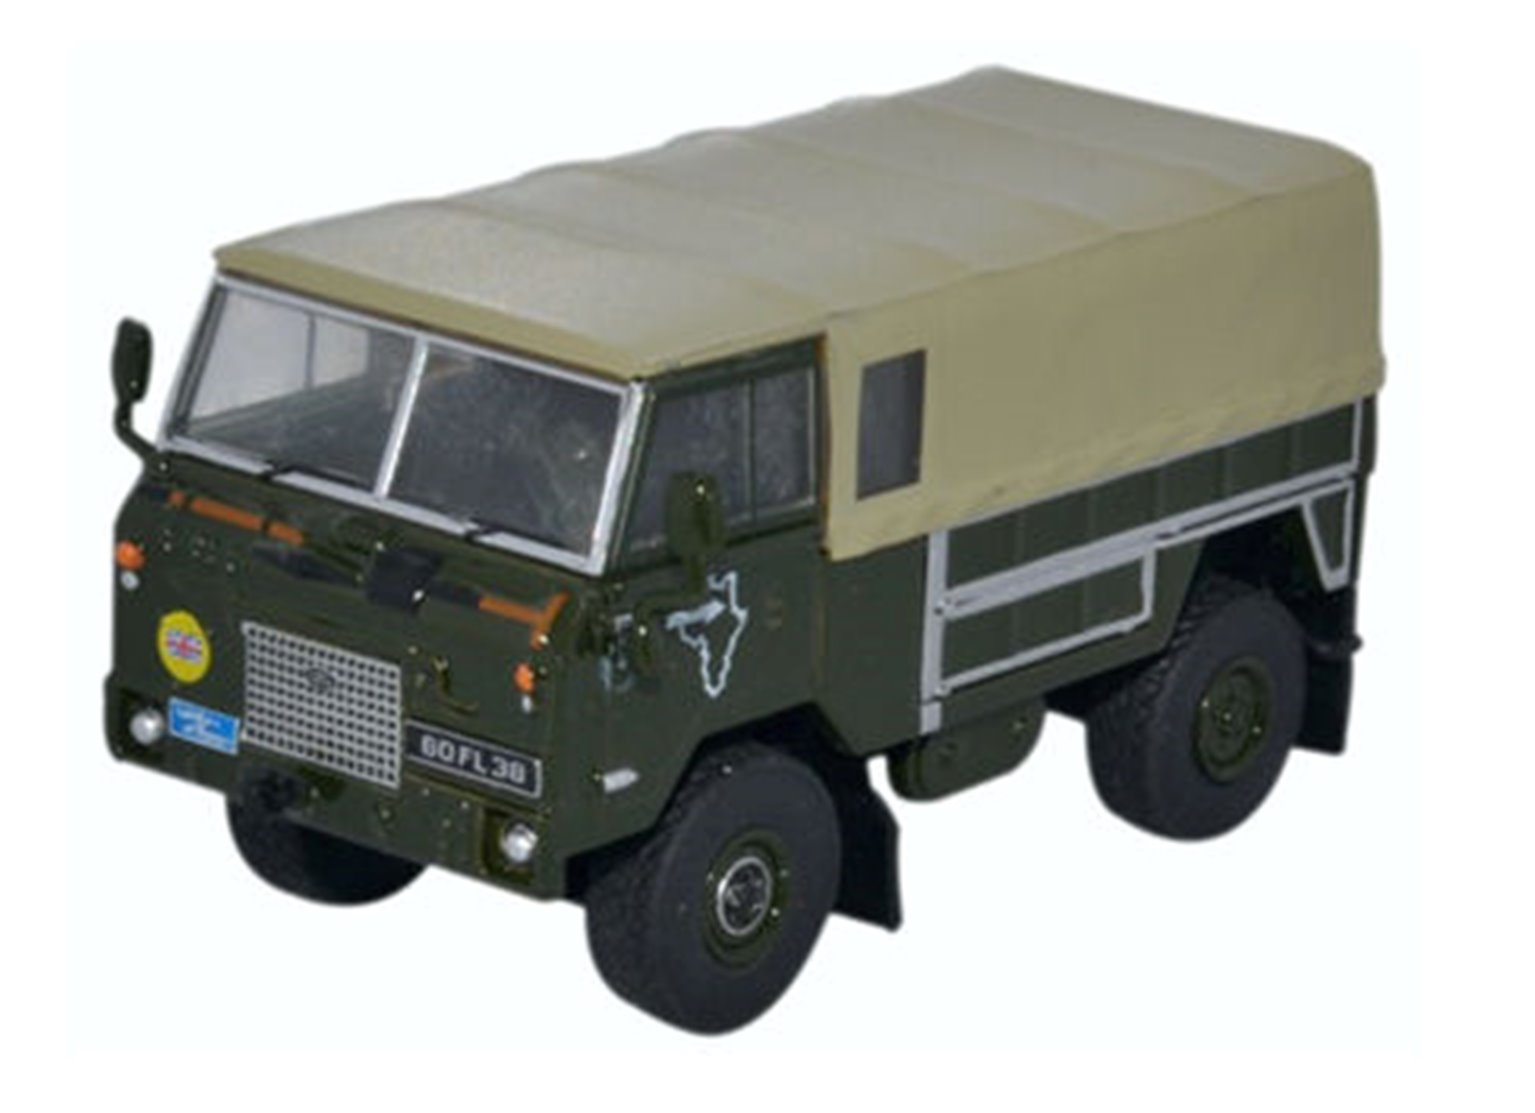 Land Rover Forward Control GS 1974 Trans Sahara Expedition